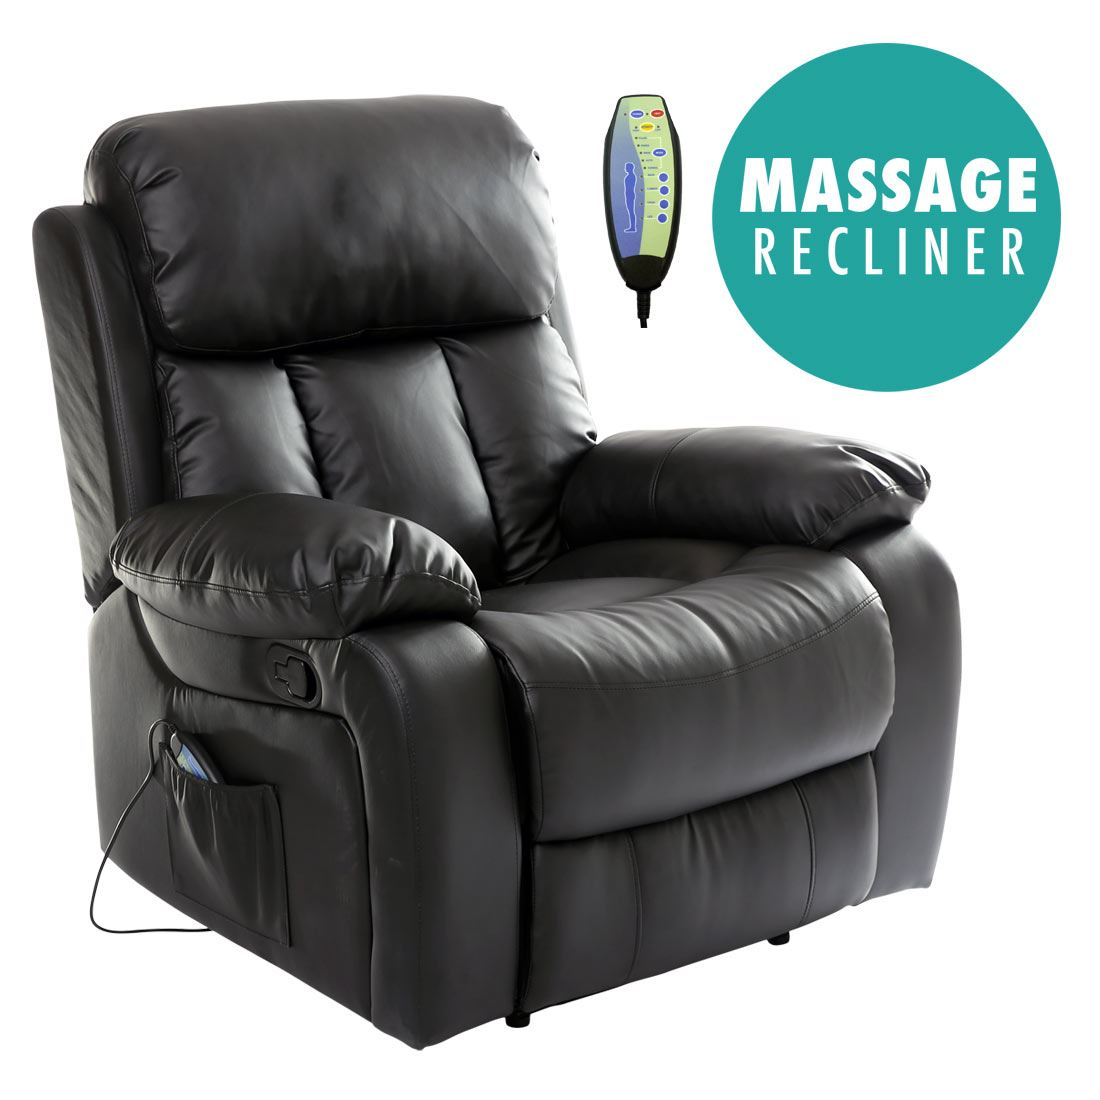 CHESTER-HEATED-LEATHER-MASSAGE-RECLINER-CHAIR-SOFA-LOUNGE-GAMING-HOME-ARMCHAIR